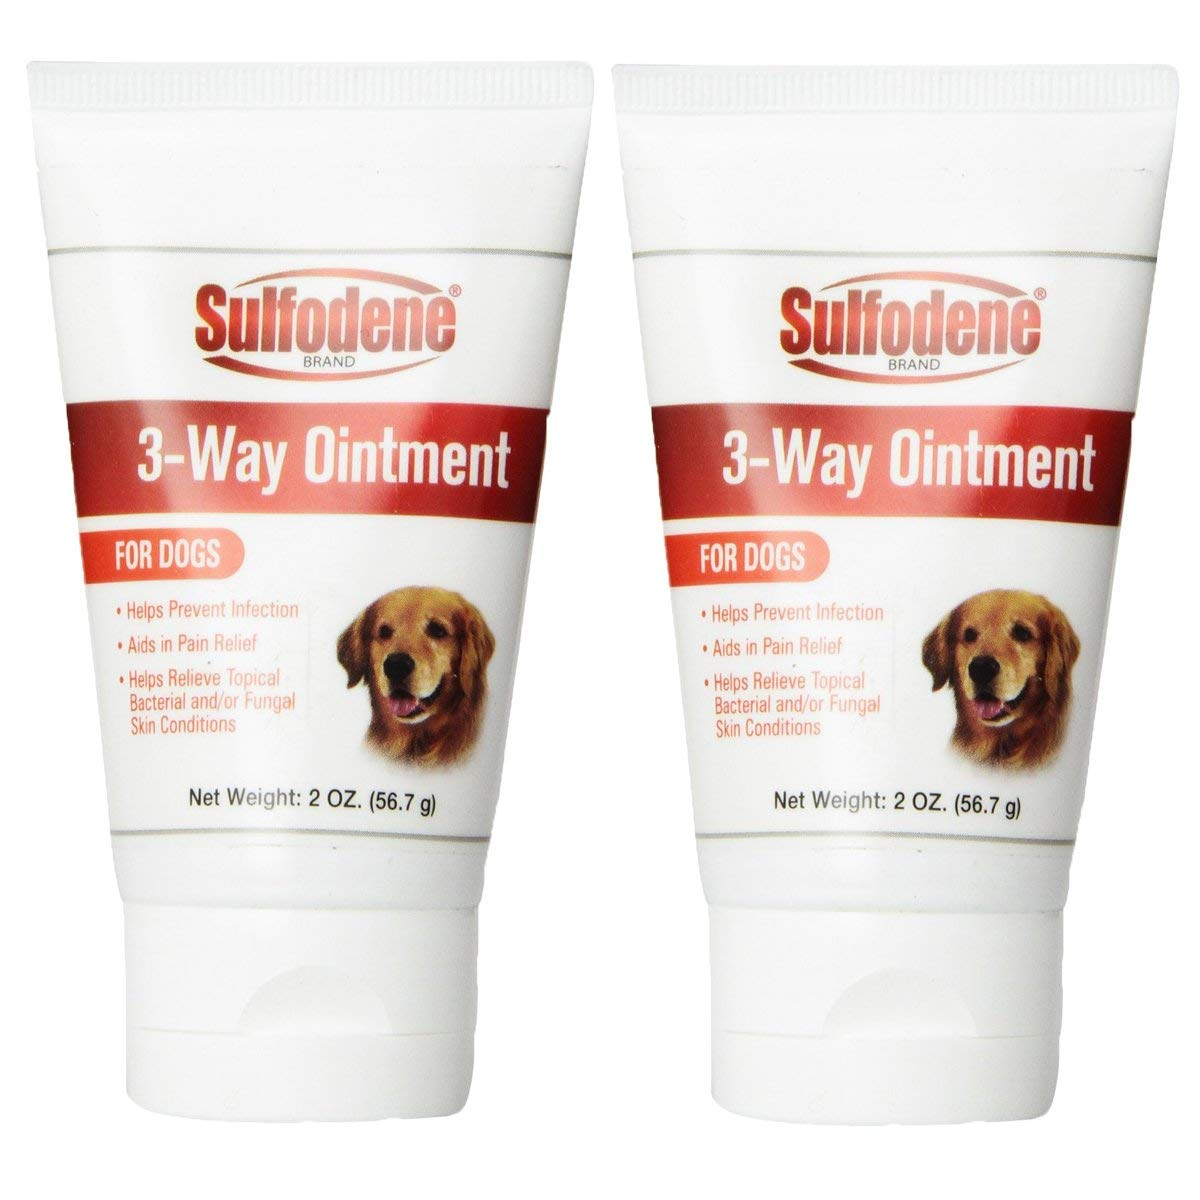 Sulfodene 3-Way Ointment for Dogs (2-Pack, 4oz) by Sulfodene